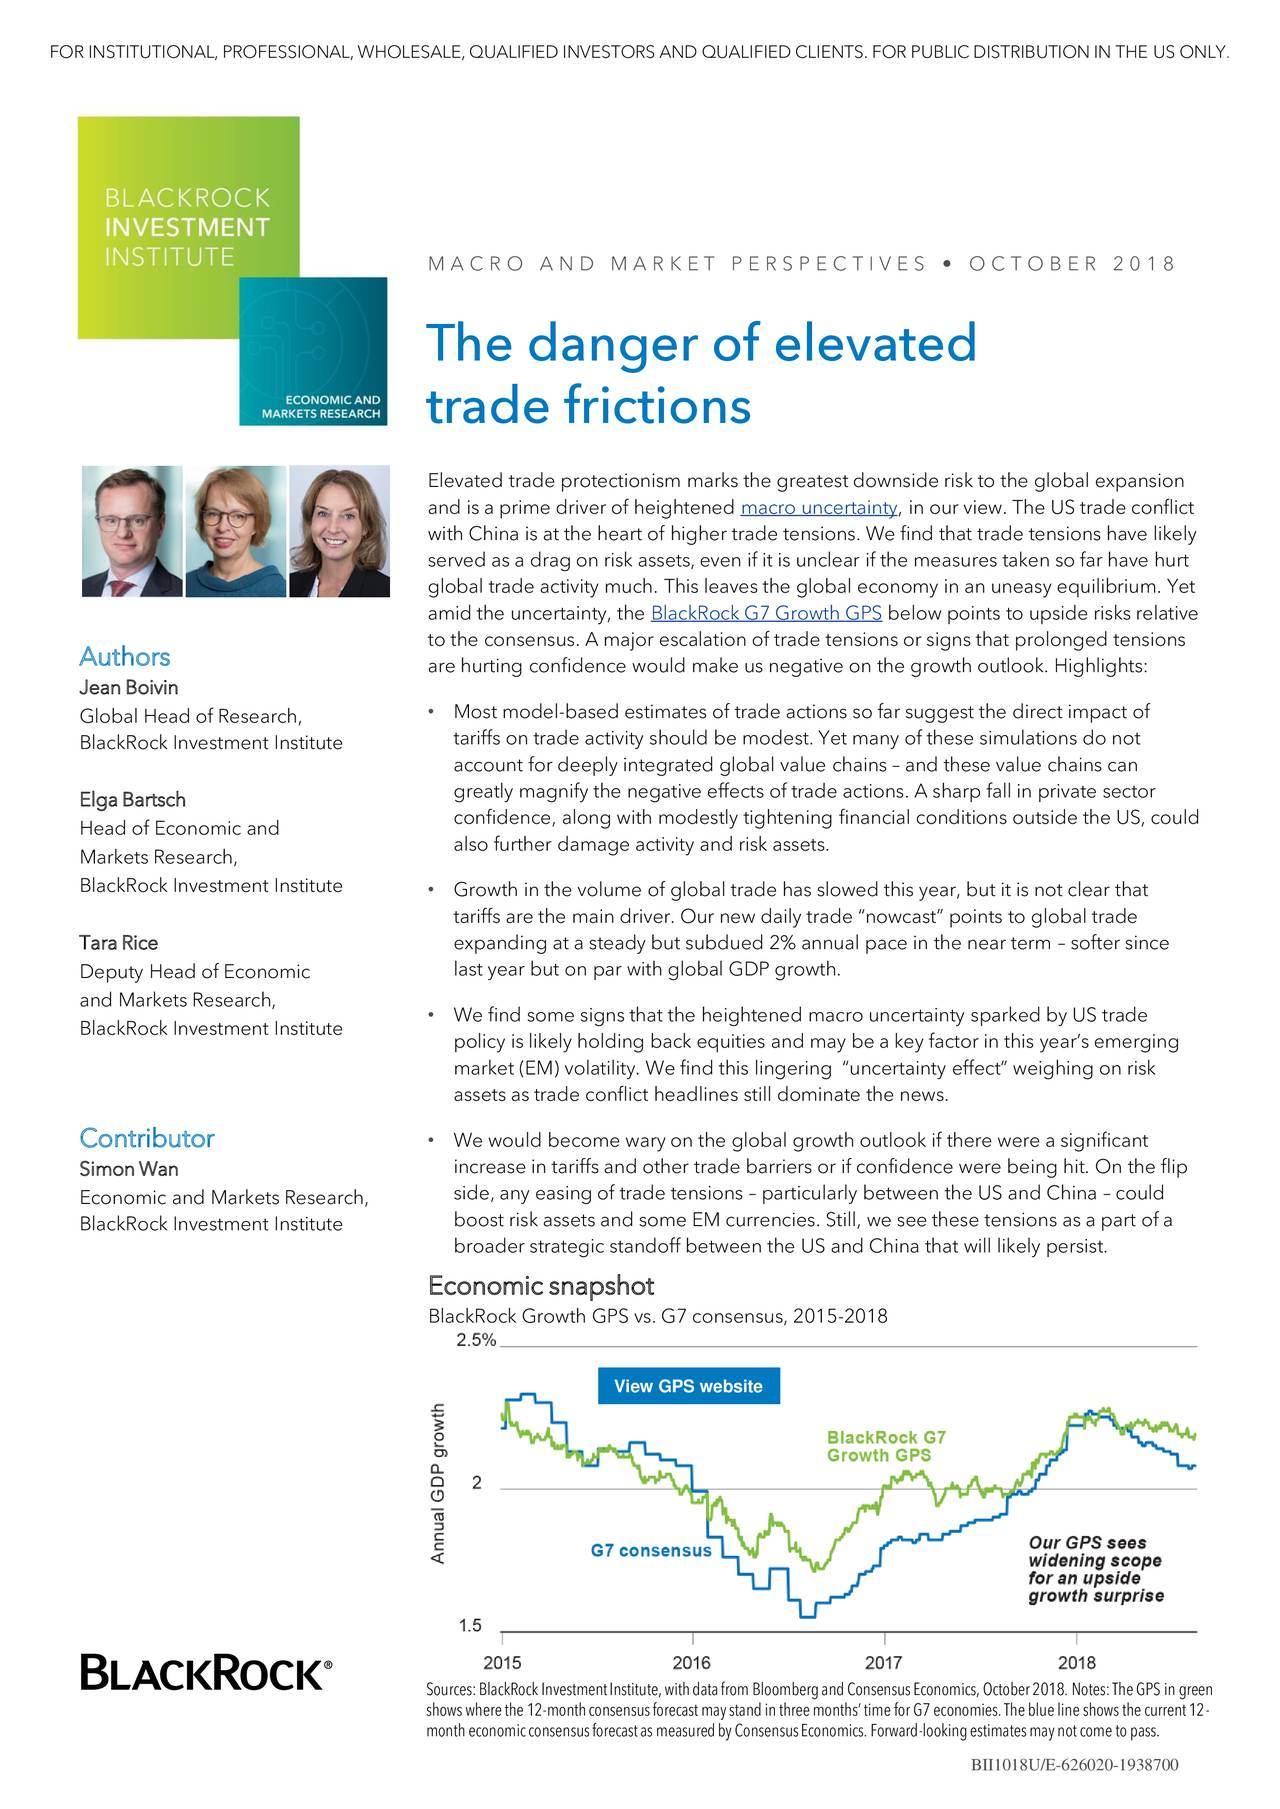 """M A C R O A N D M A R K E T P E R S P E C T I V E S • O C T O B E R 2 0 1 8 The danger of elevated trade frictions Elevated trade protectionism marks the greatest downside risk to the global expansion and is a prime driver of heightened macro uncertainty, in our view. The US trade conflict with China is at the heart of higher trade tensions. We find that trade tensions have likely served as a drag on risk assets, even if it is unclear if the measures taken so far have hurt global trade activity much. This leaves the global economy in an uneasy equilibrium. Yet amid the uncertainty, the BlackRock G7 Growth GPS below points to upside risks relative to the consensus. A major escalation of trade tensions or signs that prolonged tensions Authors are hurting confidence would make us negative on the growth outlook. Highlights: Jean Boivin Global Head of Research, • Most model-based estimates of trade actions so far suggest the direct impact of BlackRock Investment Institute tariffs on trade activity should be modest. Yet many of these simulations do not account for deeply integrated global value chains – and these value chains can Elga Bartsch greatly magnify the negative effects of trade actions. A sharp fall in private sector confidence, along with modestly tightening financial conditions outside the US, could Head of Economic and also further damage activity and risk assets. Markets Research, BlackRock Investment Institute • Growth in the volume of global trade has slowed this year, but it is not clear that tariffs are the main driver. Our new daily trade """"nowcast"""" points to global trade Tara Rice expanding at a steady but subdued 2% annual pace in the near term – softer since last year but on par with global GDP growth. Deputy Head of Economic and Markets Research, BlackRock Investment Institute • We find some signs that the heightened macro uncertainty sparked by US trade policy is likely holding back equities and may be a key factor in this year's emerging market (EM"""